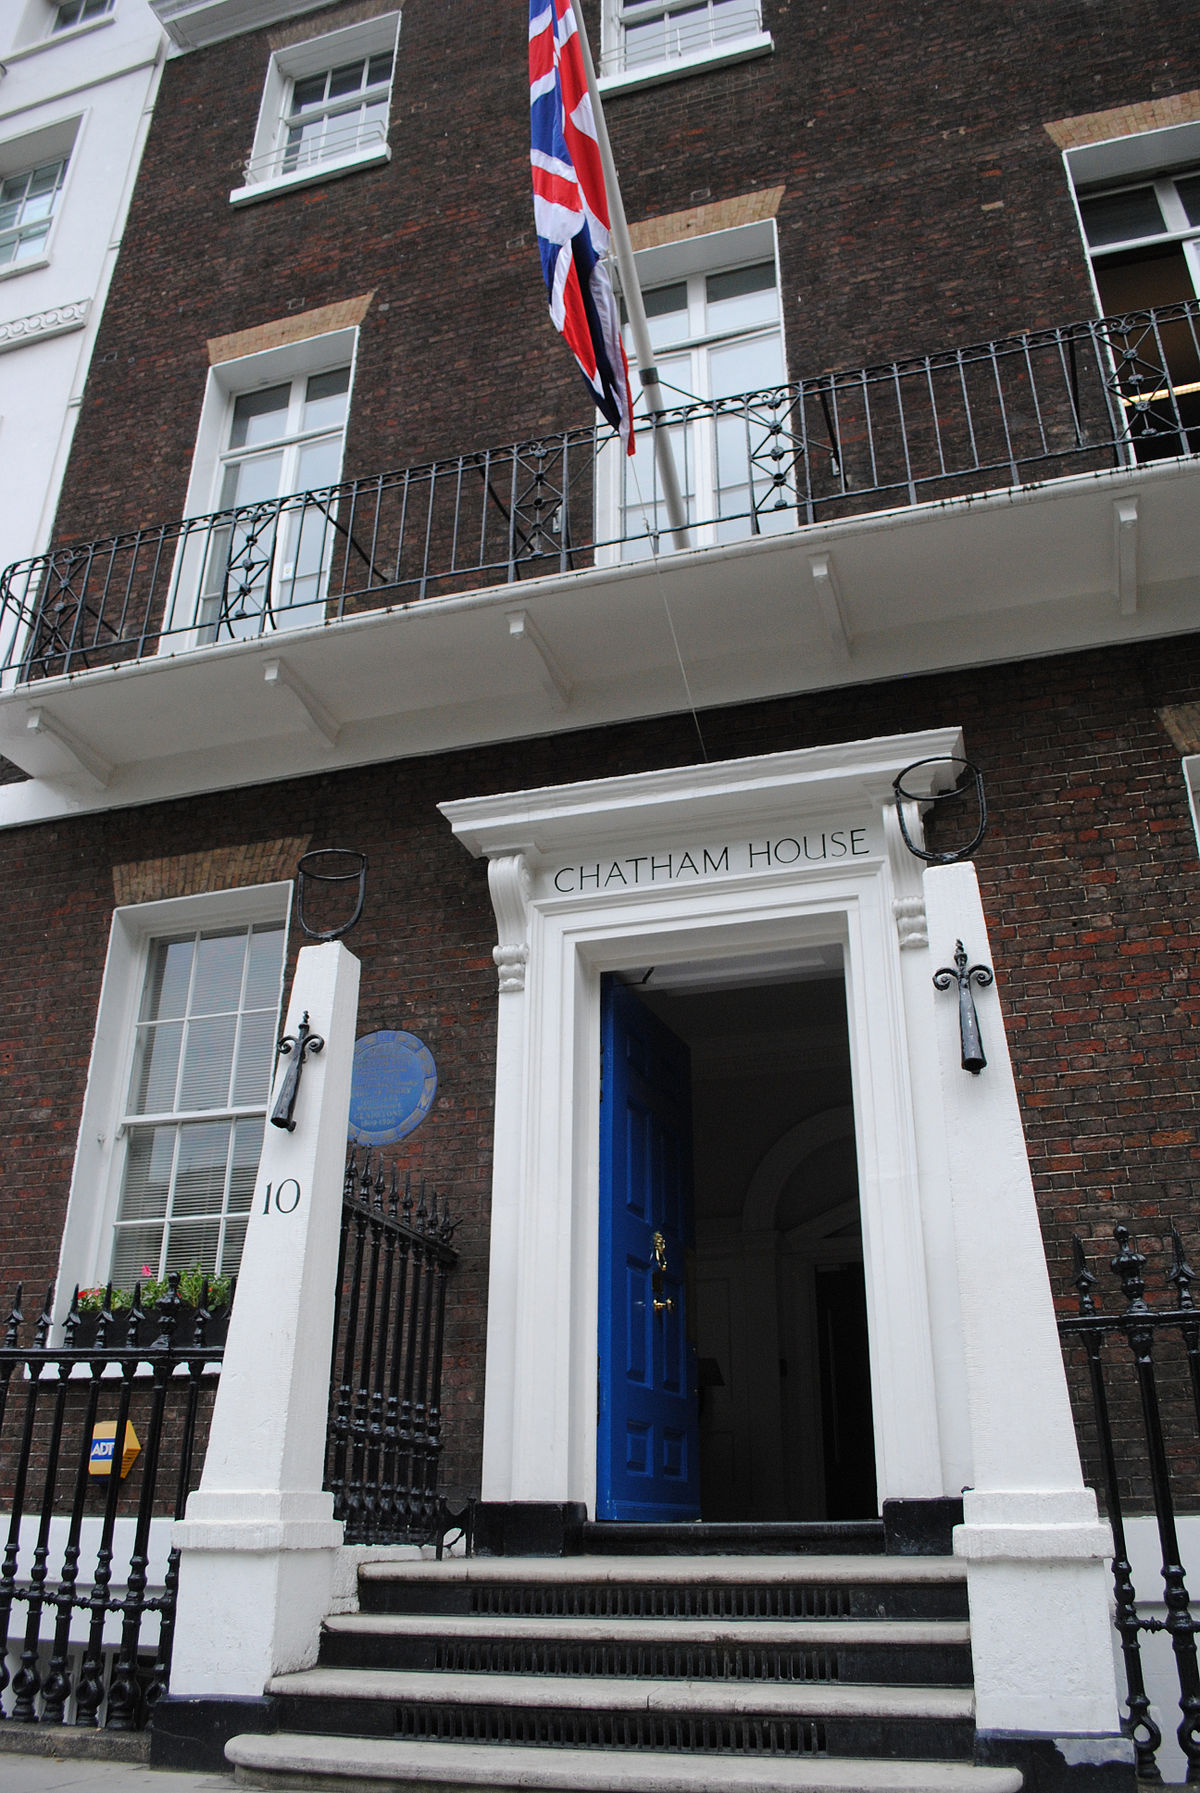 Are House: Chatham House Rule